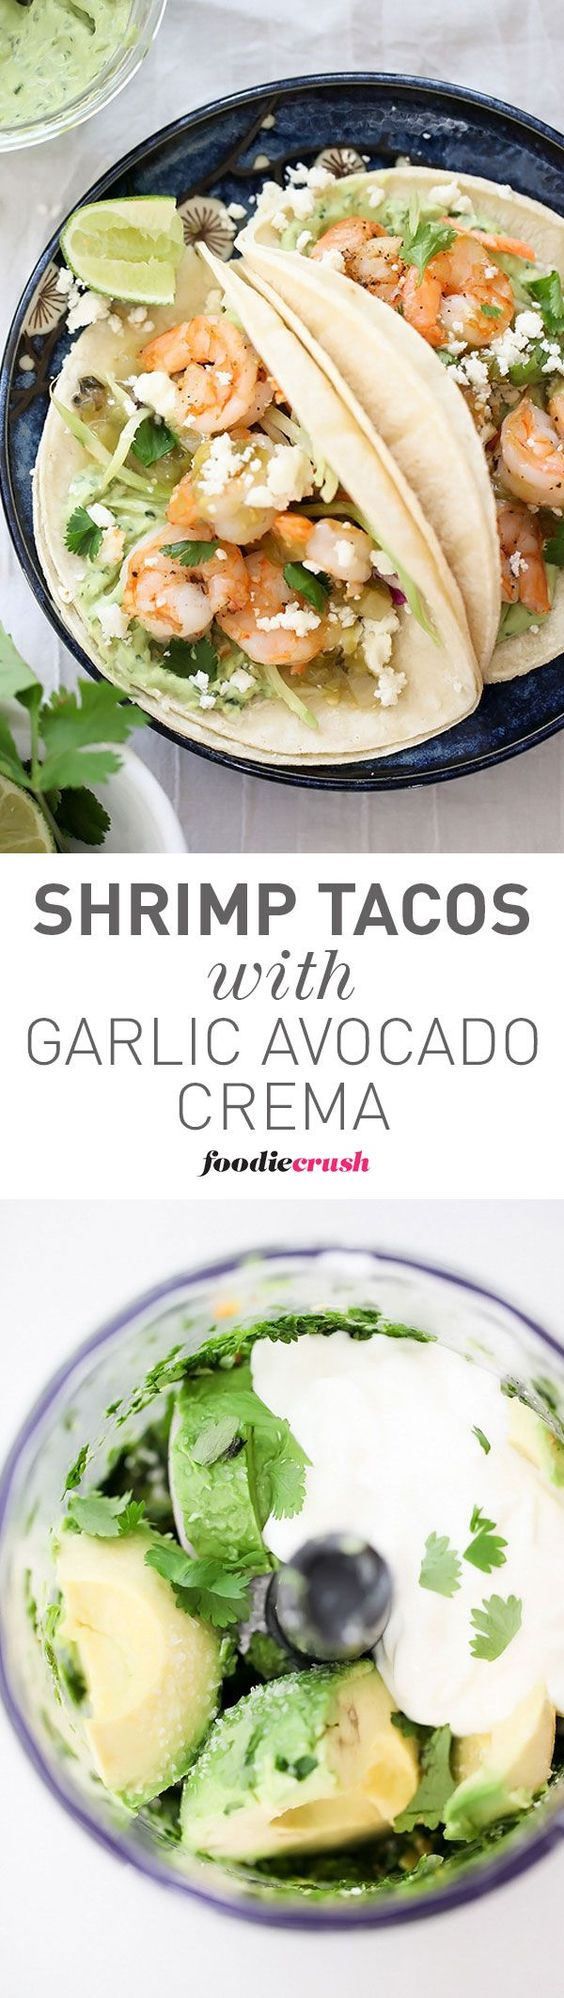 Garlic adds a flavorful touch to these shrimp tacos topped with salsa ...